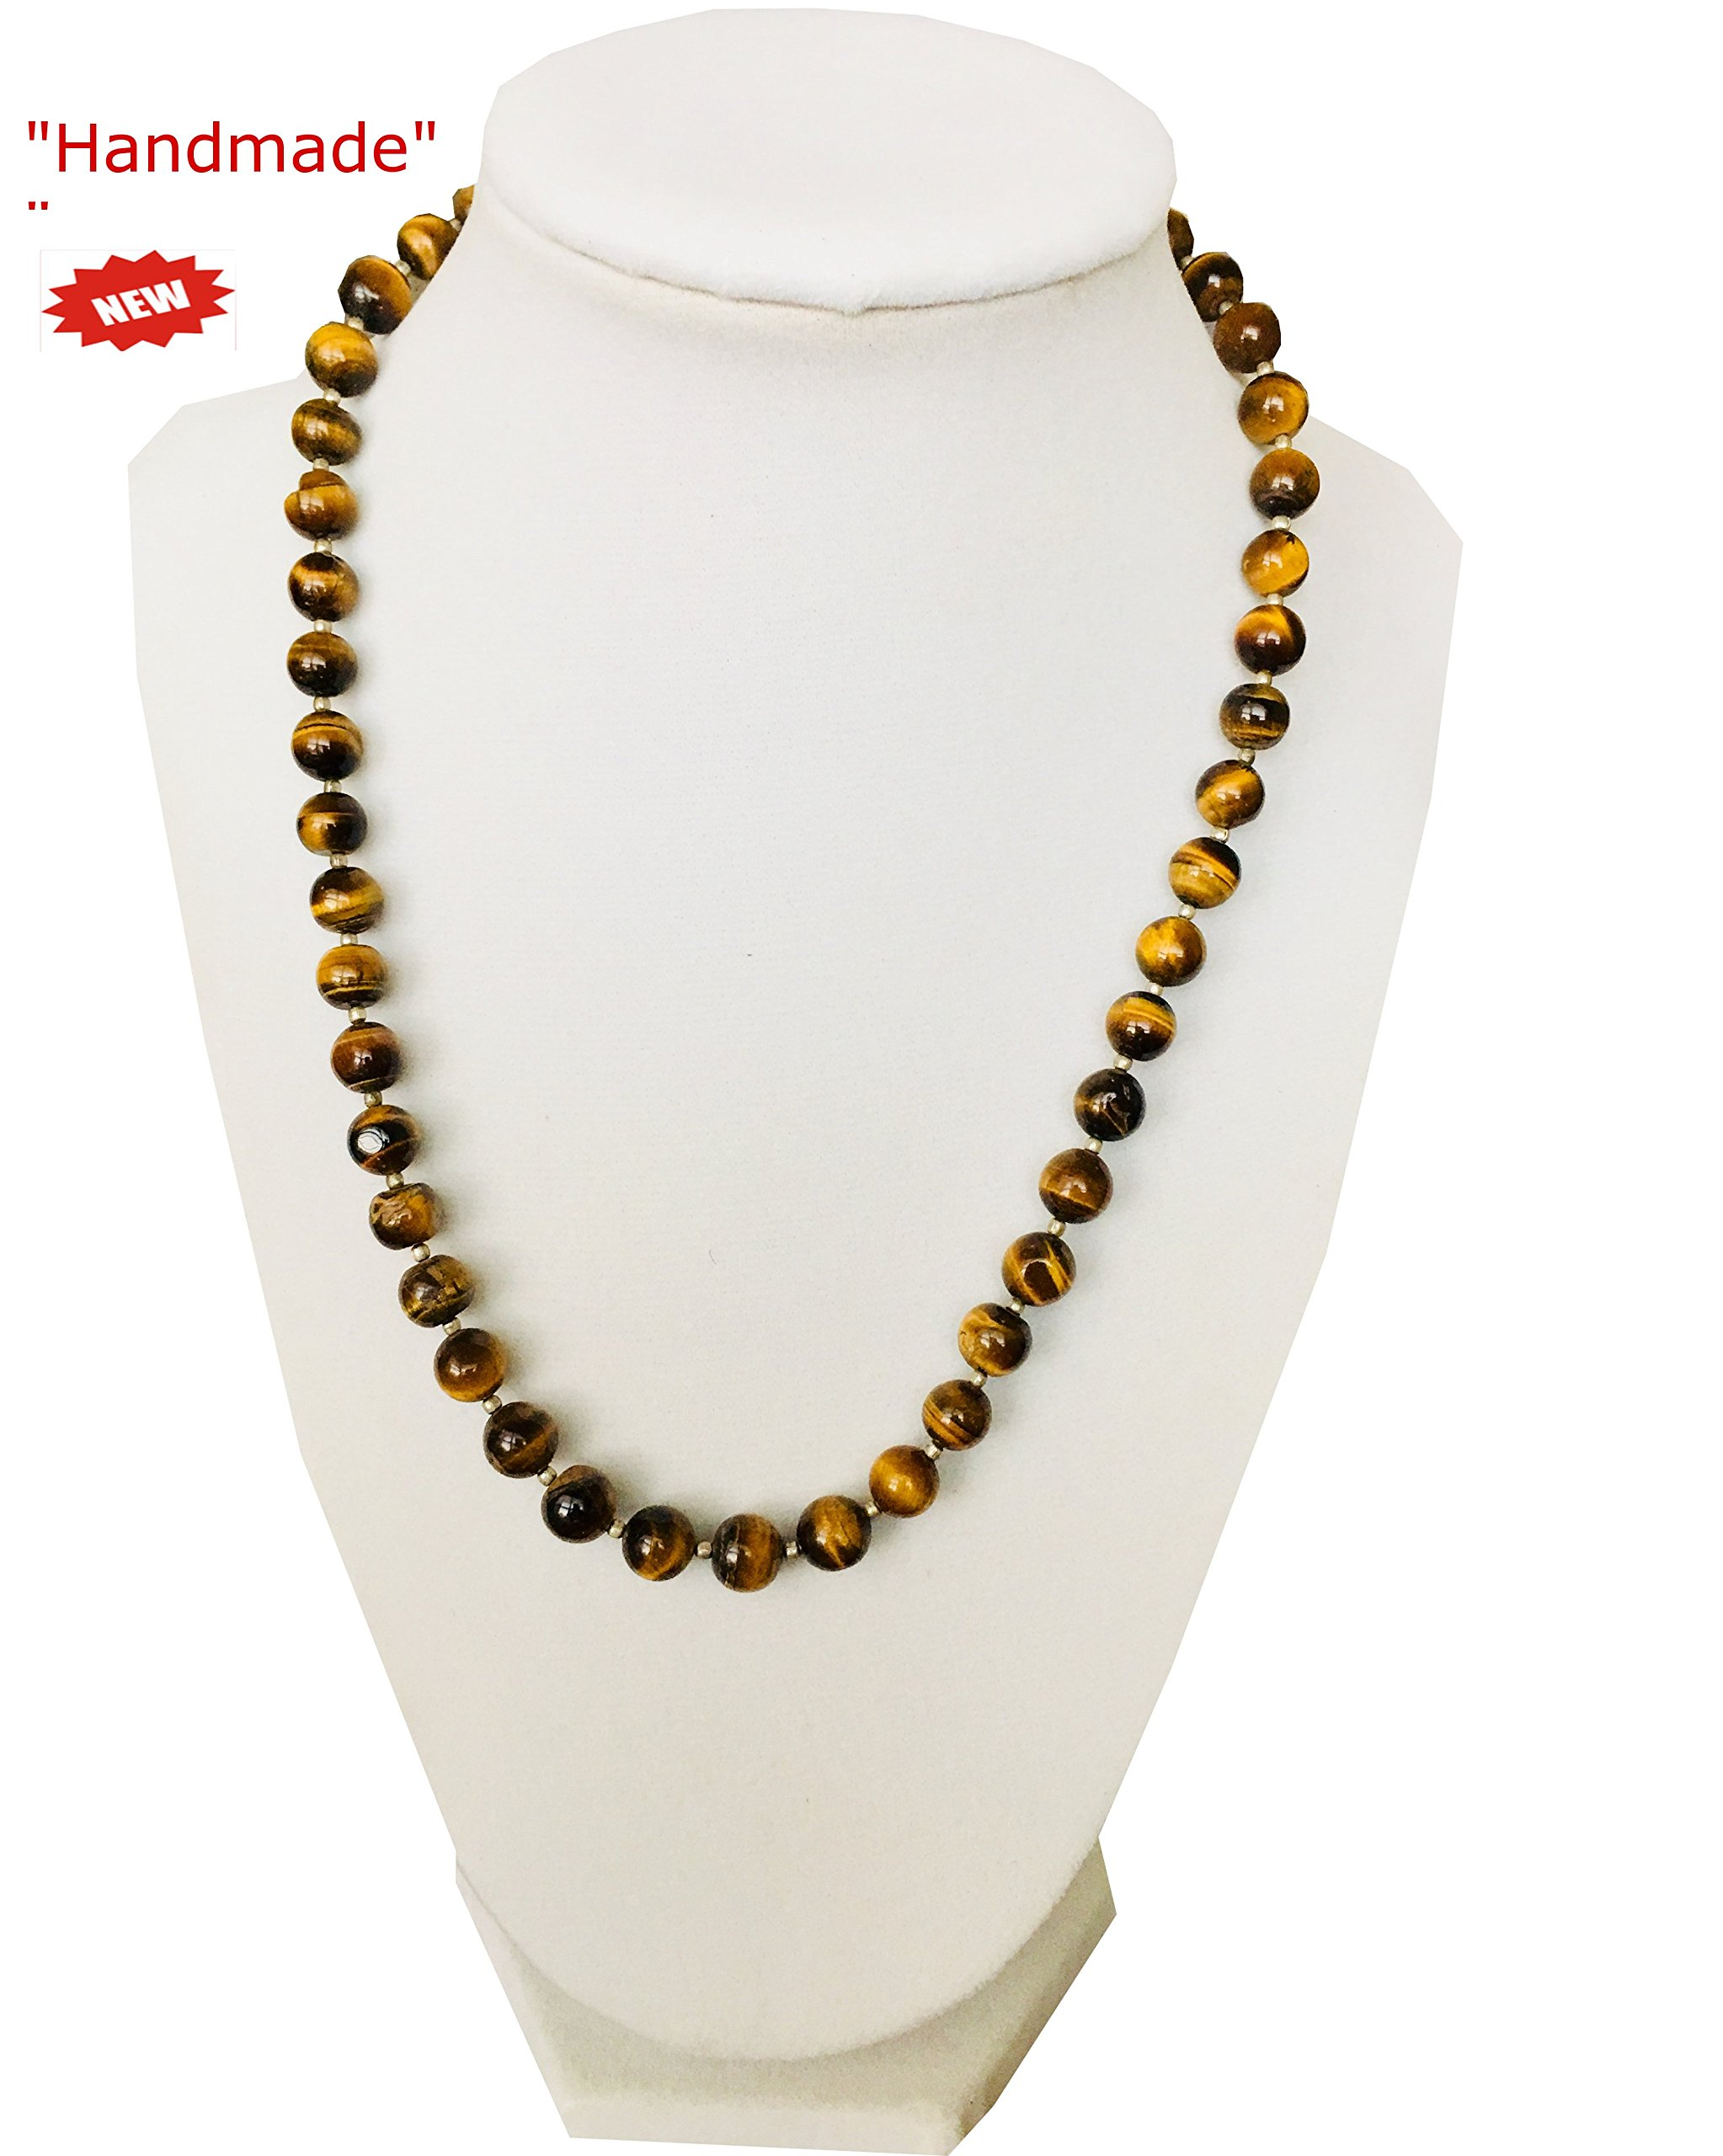 Himalayan Handmade Elegant Necklace Round Brown Color Beads Comes With Gift Box